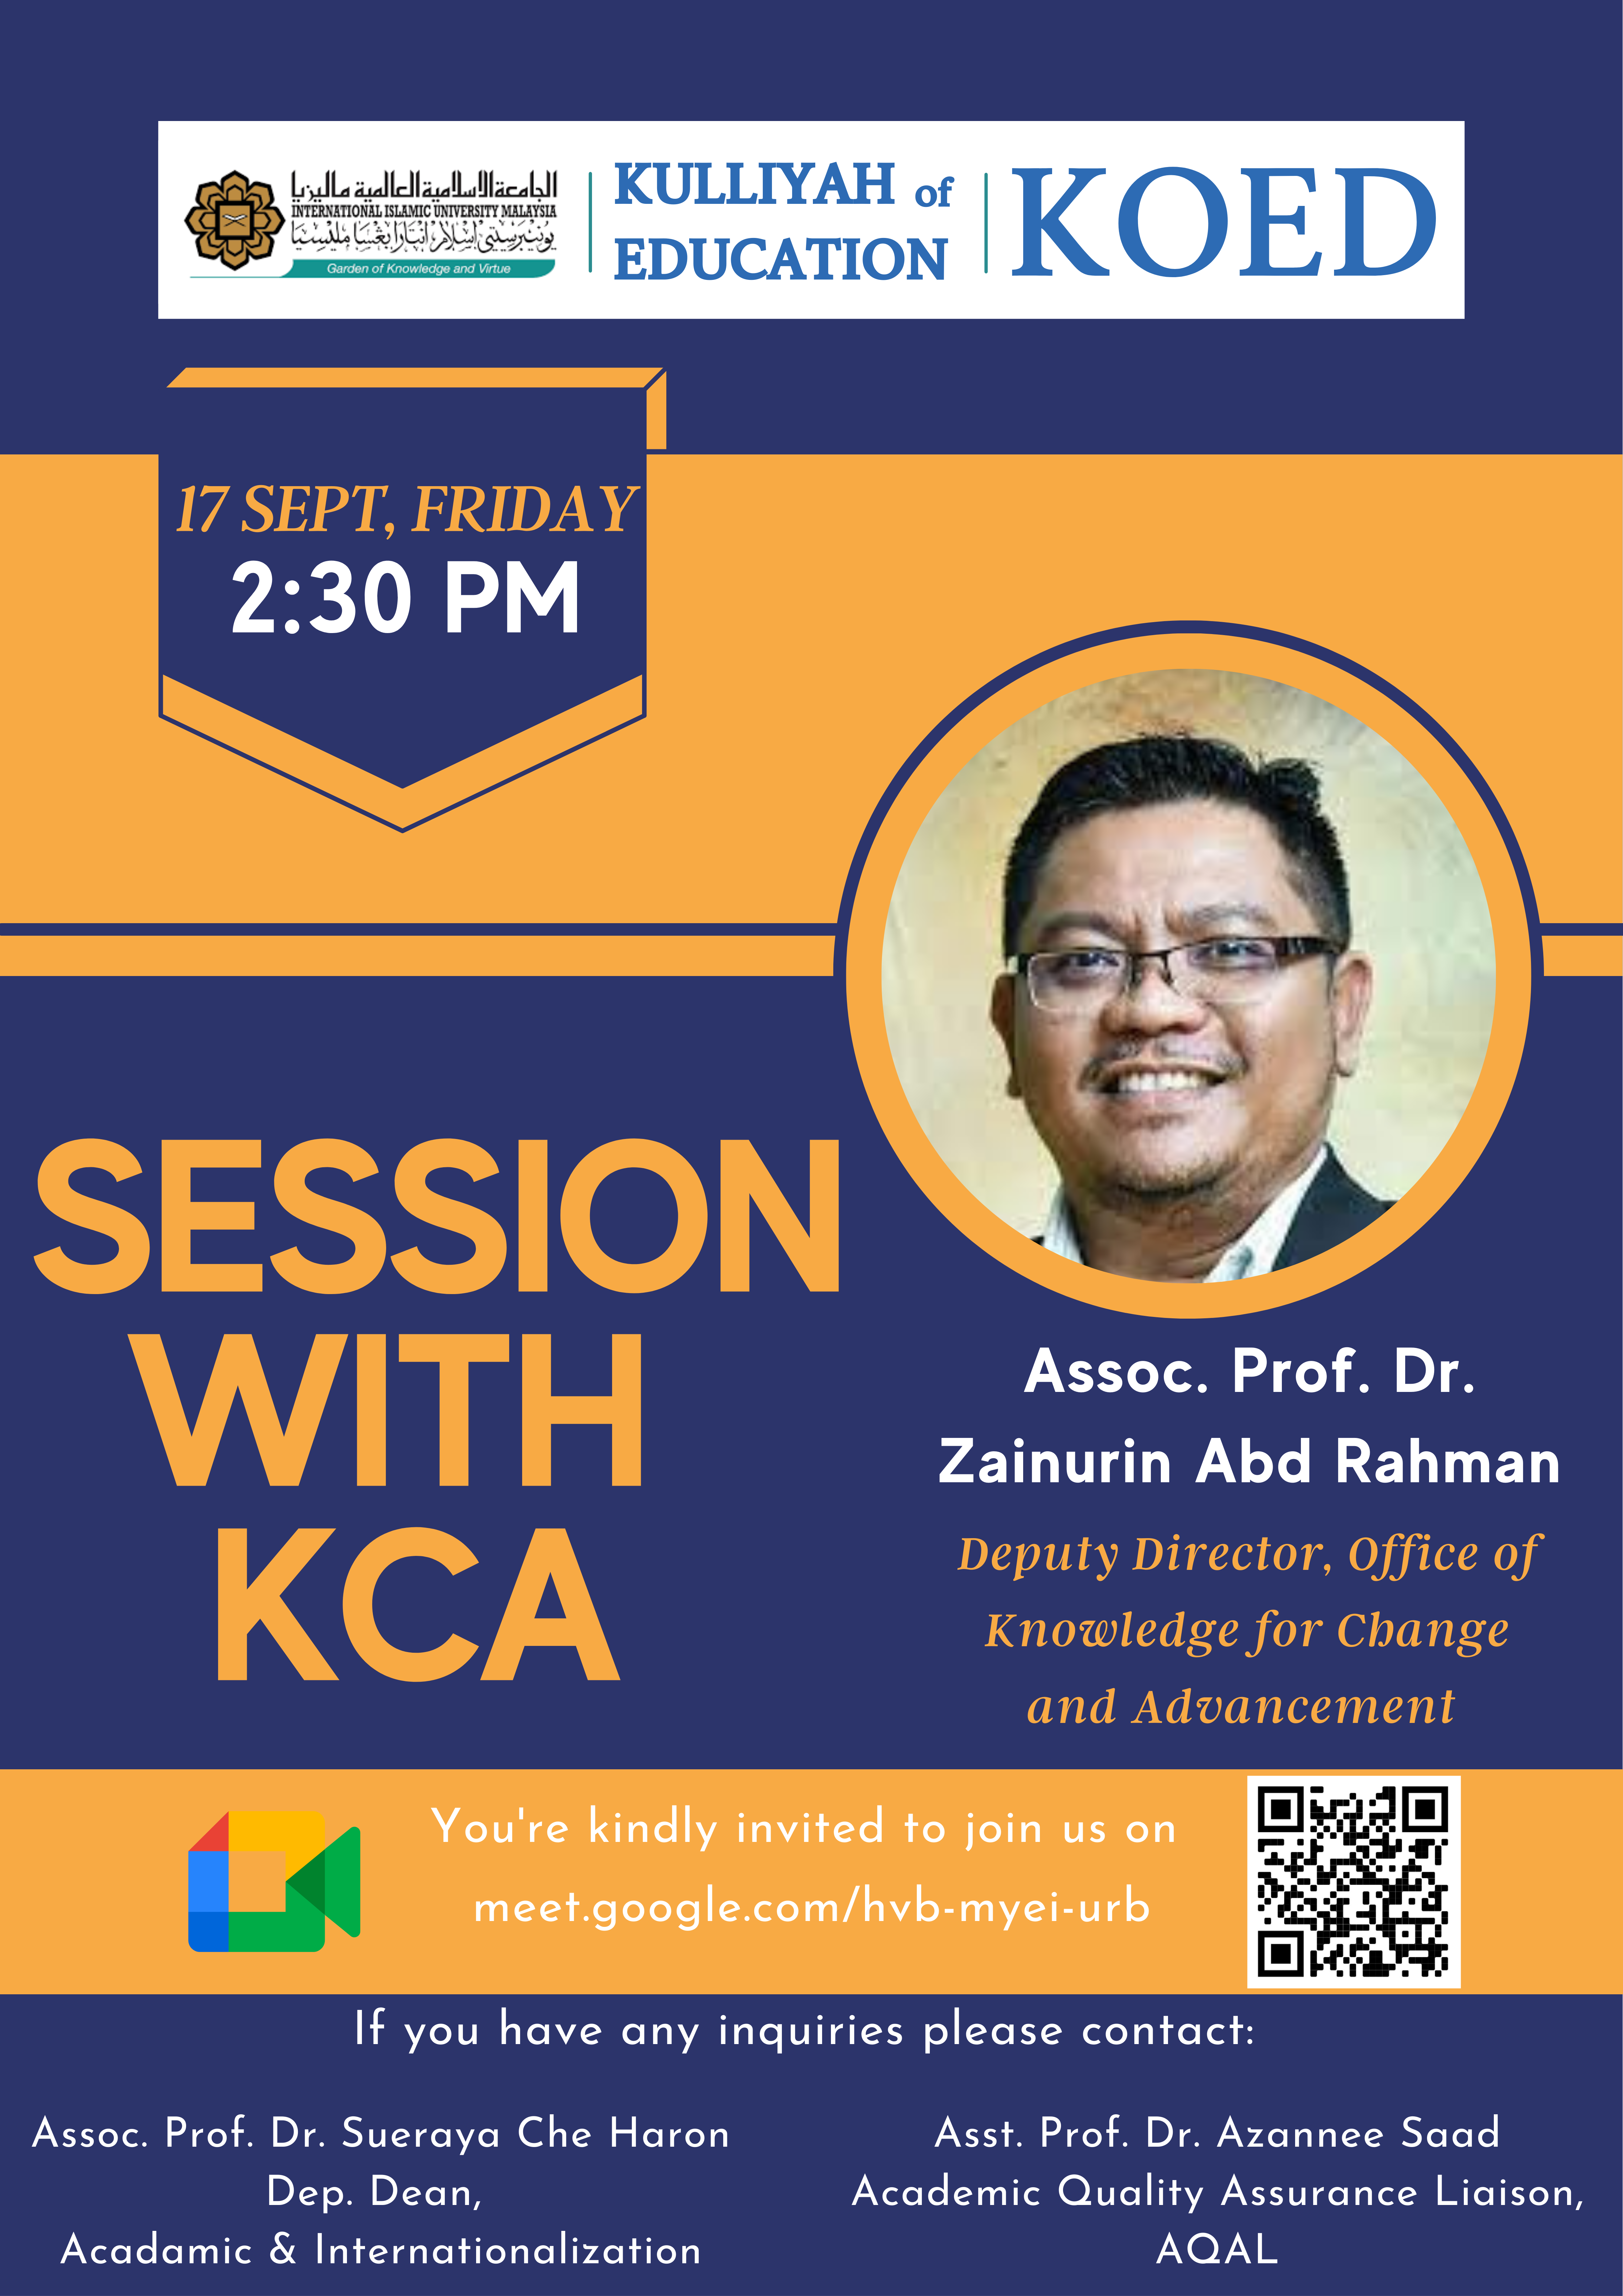 Session with KCA